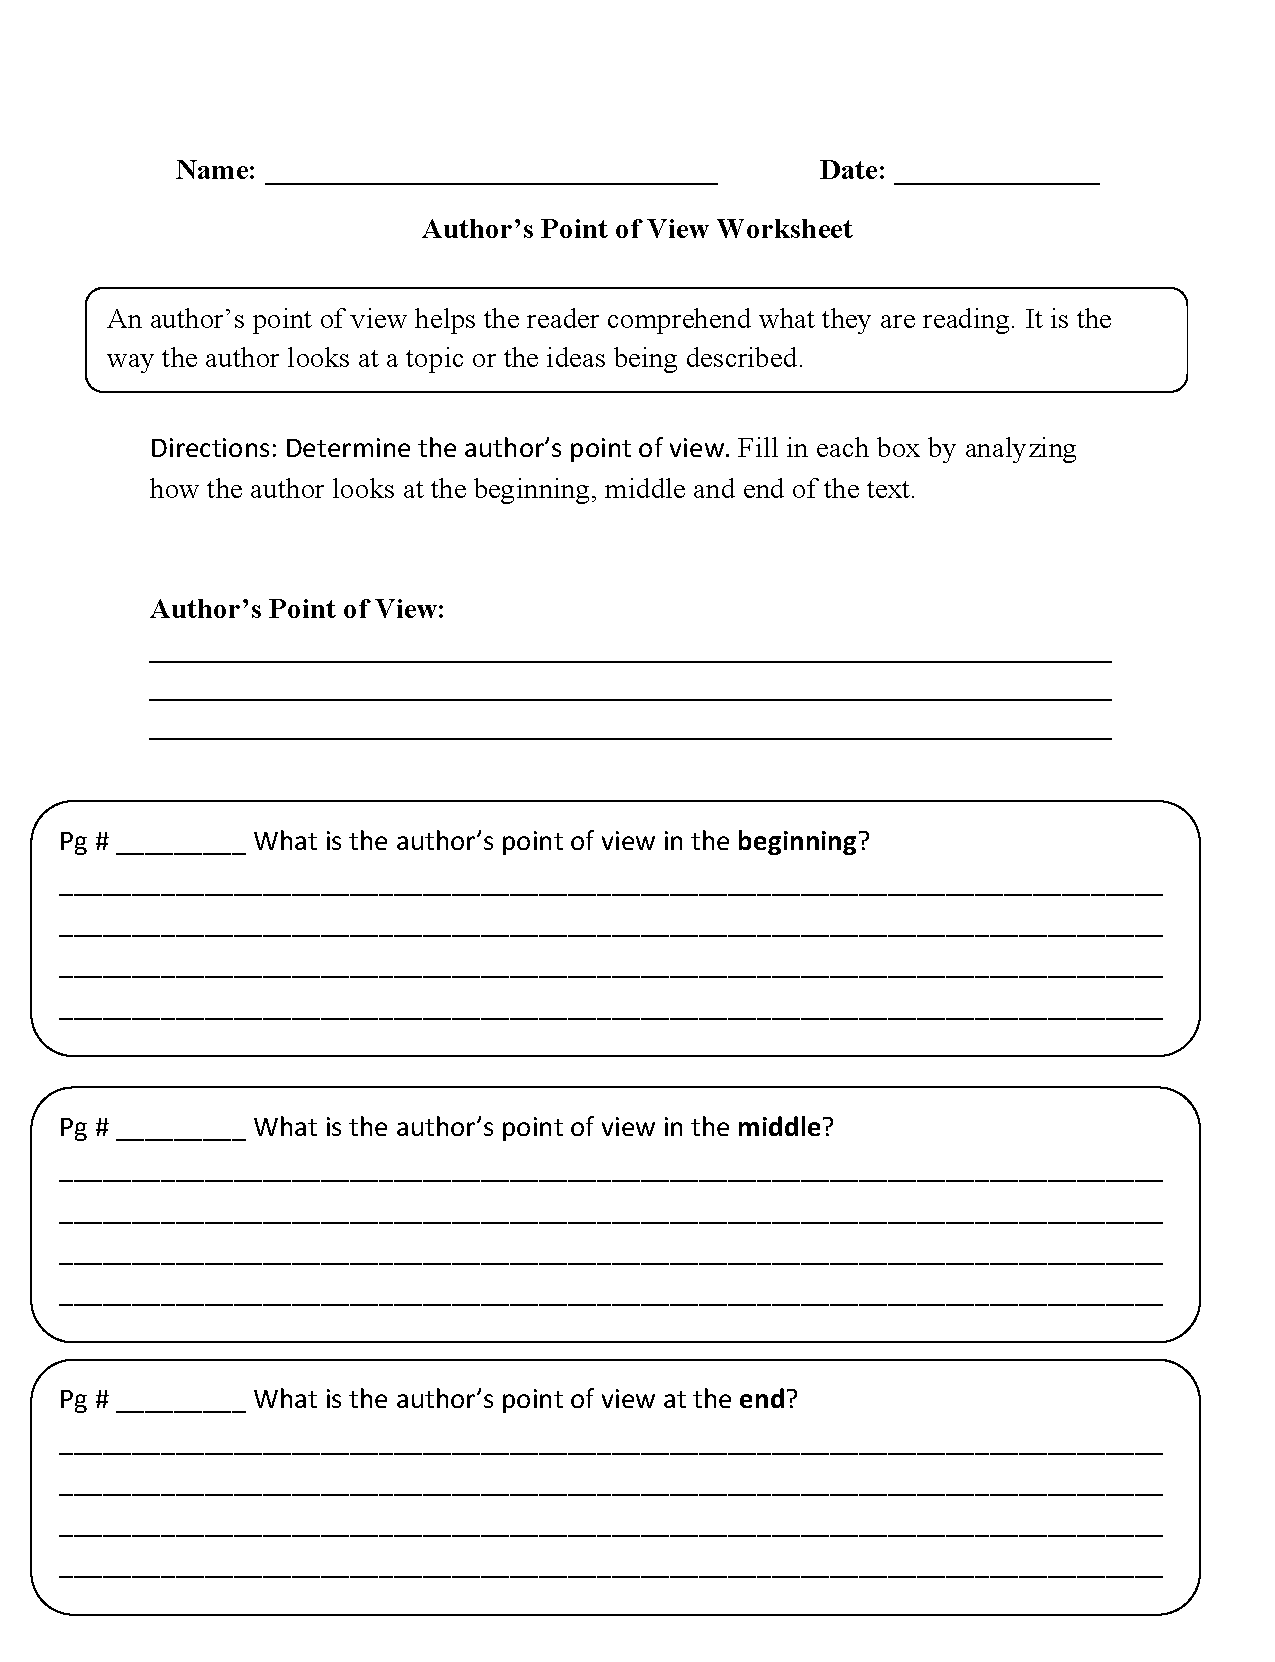 Weirdmailus  Fascinating Englishlinxcom  Point Of View Worksheets With Marvelous Point Of View Worksheets With Nice Excel Link To Worksheet Also Nuclear Equation Worksheet In Addition Adding And Subtracting Fractions And Mixed Numbers Worksheet And Valentines Math Worksheets As Well As Rd Grade Worksheets Pdf Additionally Solving Multiplication And Division Equations Worksheets From Englishlinxcom With Weirdmailus  Marvelous Englishlinxcom  Point Of View Worksheets With Nice Point Of View Worksheets And Fascinating Excel Link To Worksheet Also Nuclear Equation Worksheet In Addition Adding And Subtracting Fractions And Mixed Numbers Worksheet From Englishlinxcom